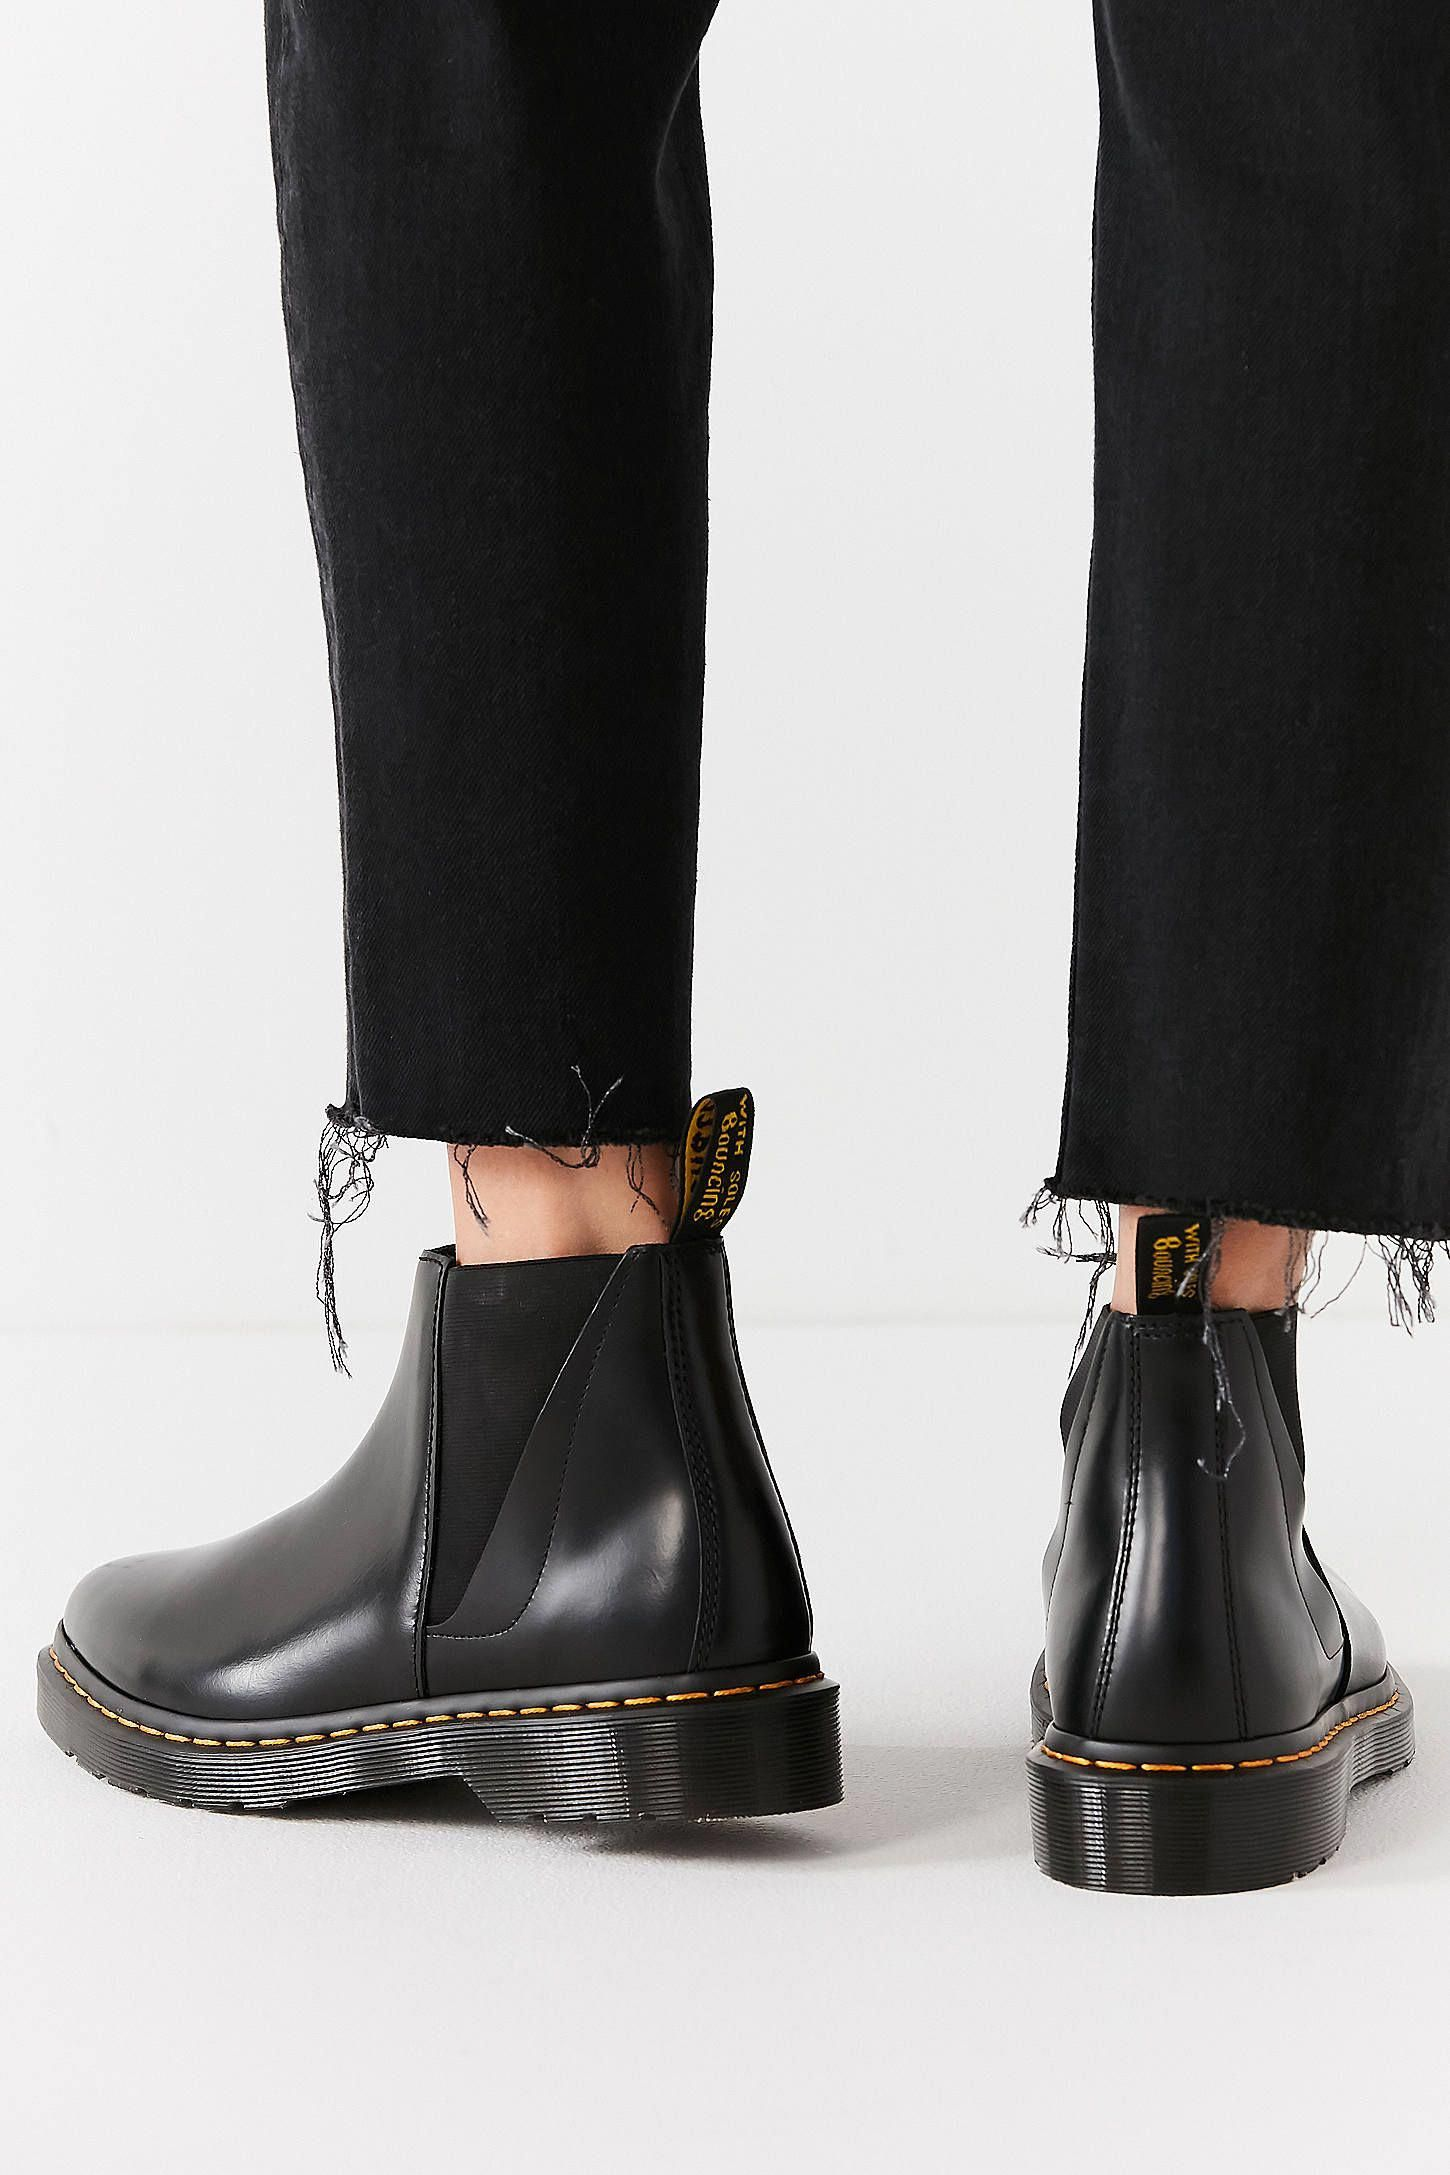 Macchina ricevente Manuale nebbia  Dr. Martens Bianca Chelsea Boot | Urban Outfitters #DocMartensstyle | Chelsea  boots, Boots, Chelsea boots women